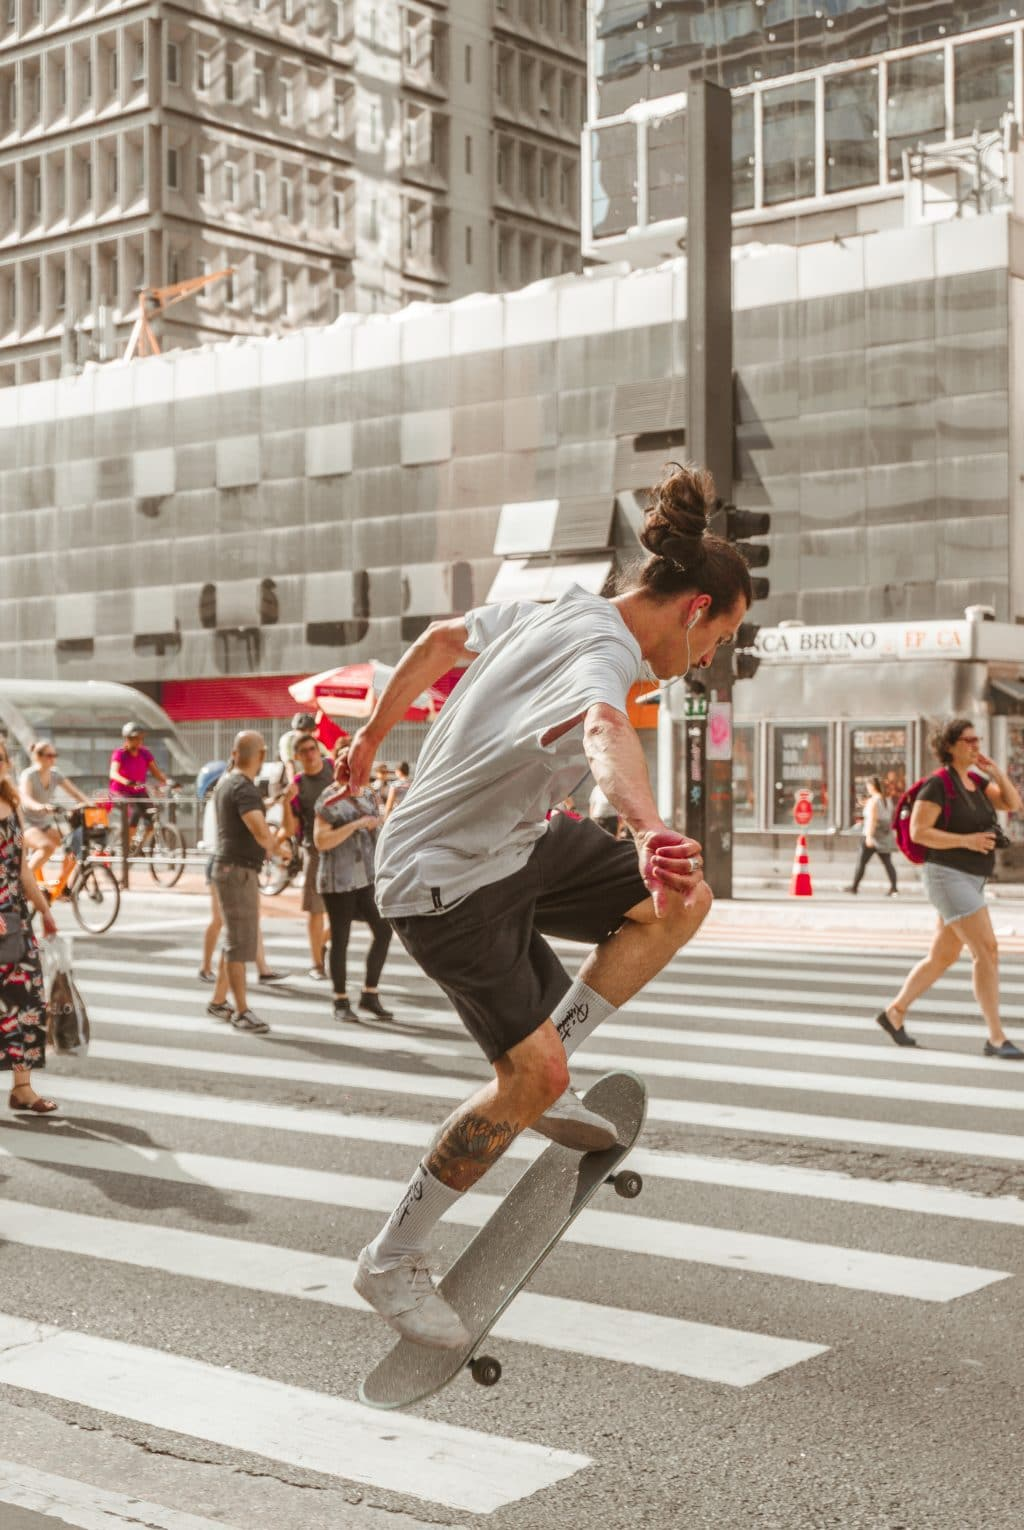 man skating on the pedestrian lane